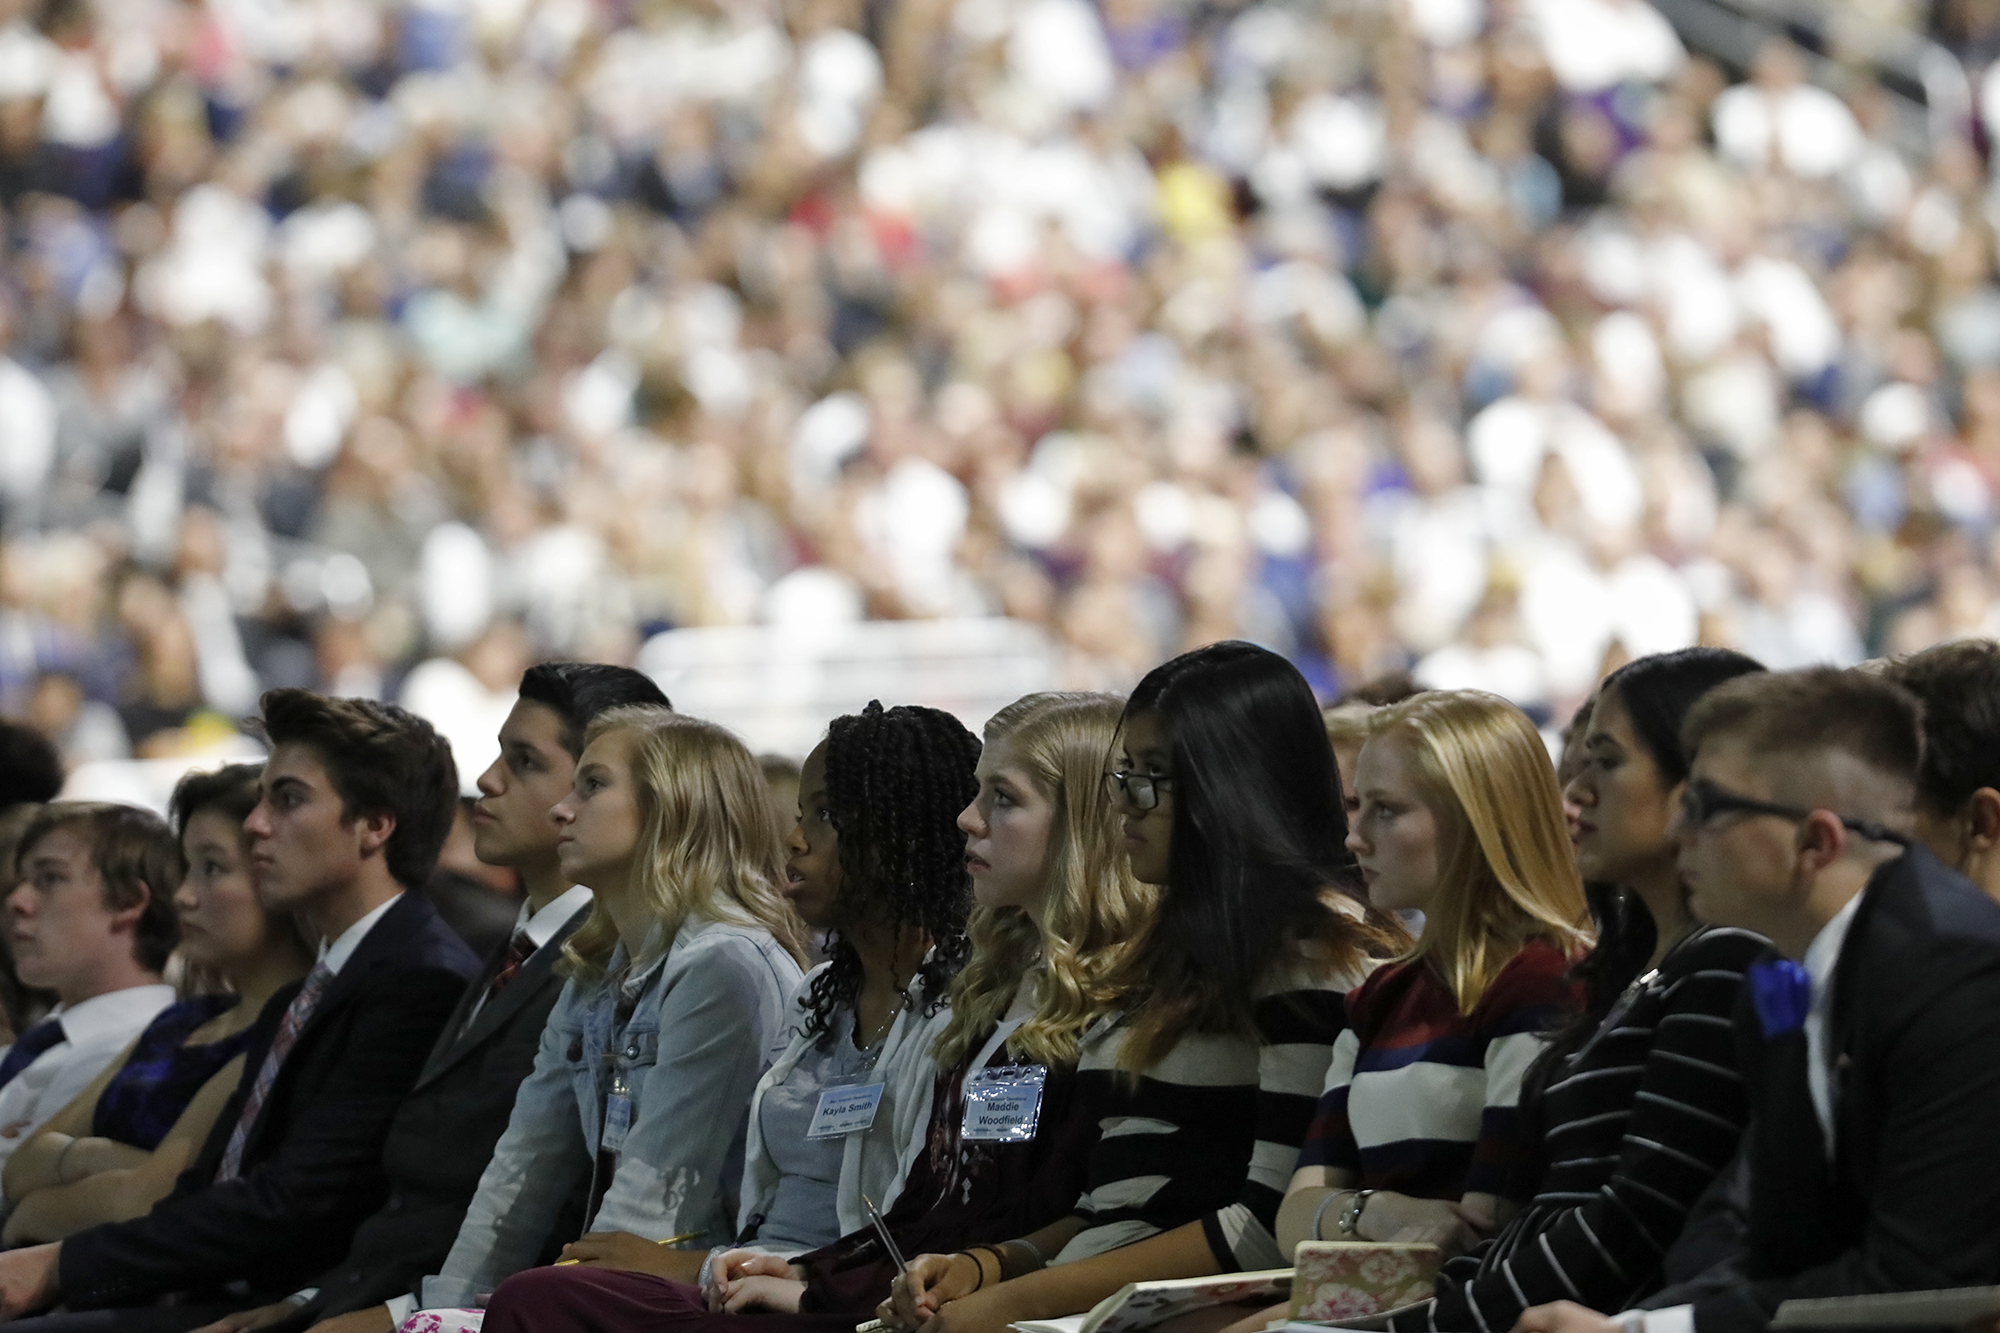 Local Latter-day Saint Youth listen to speakers during the special devotional held Sunday Nov. 18, 2018, at the Alamodome in San Antonio, Texas. On Dec. 14, 2018, the First Presidency announced changes to the timeline children and youth in The Church of Jesus Christ of Latter-day Saints will complete Primary, move from one class or quorum to the next and attend the temple for the first time. The changes, also impact when young men may be ordained to priesthood offices.